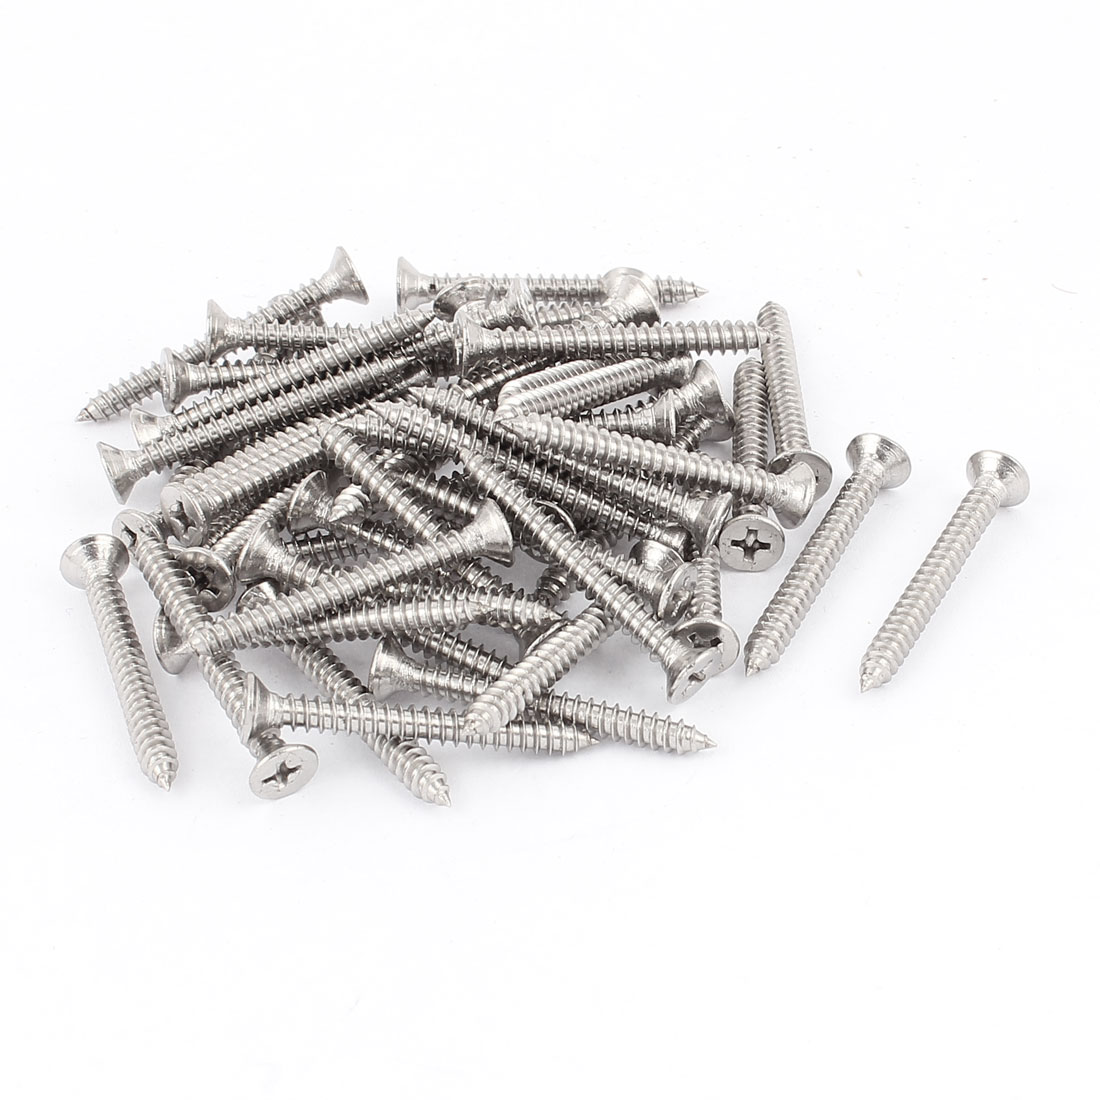 4.2mm x 38mm Countersunk Cross Head Self Tapping Screw Fasteners 50 Pcs